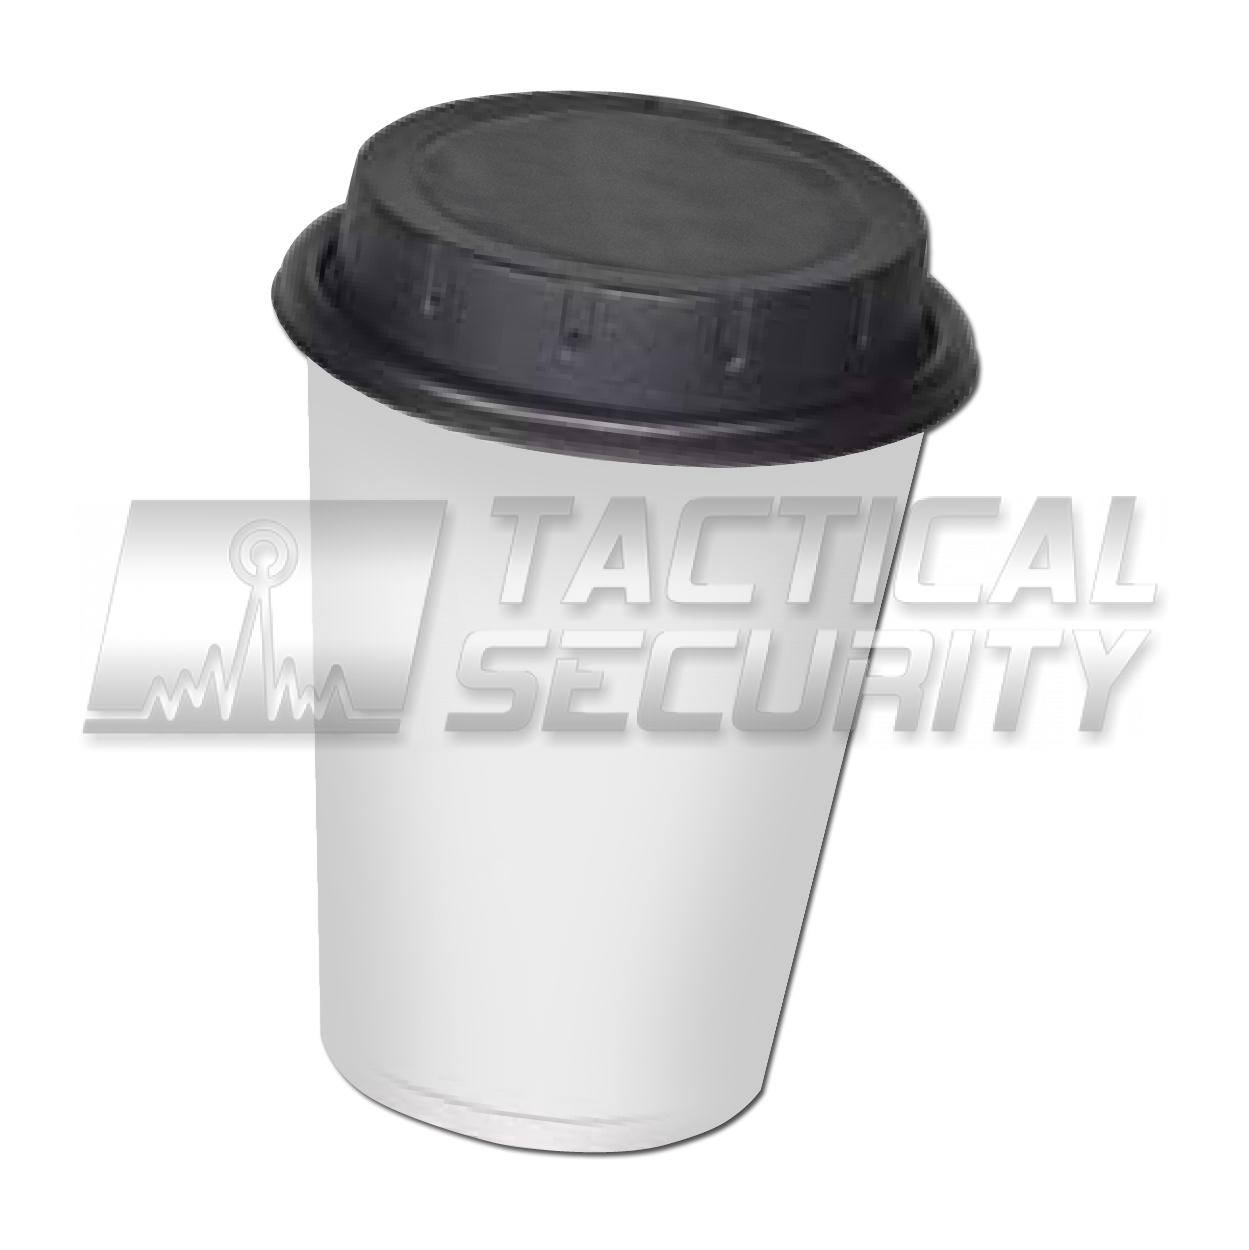 Tapa de Vaso DVR HD costado